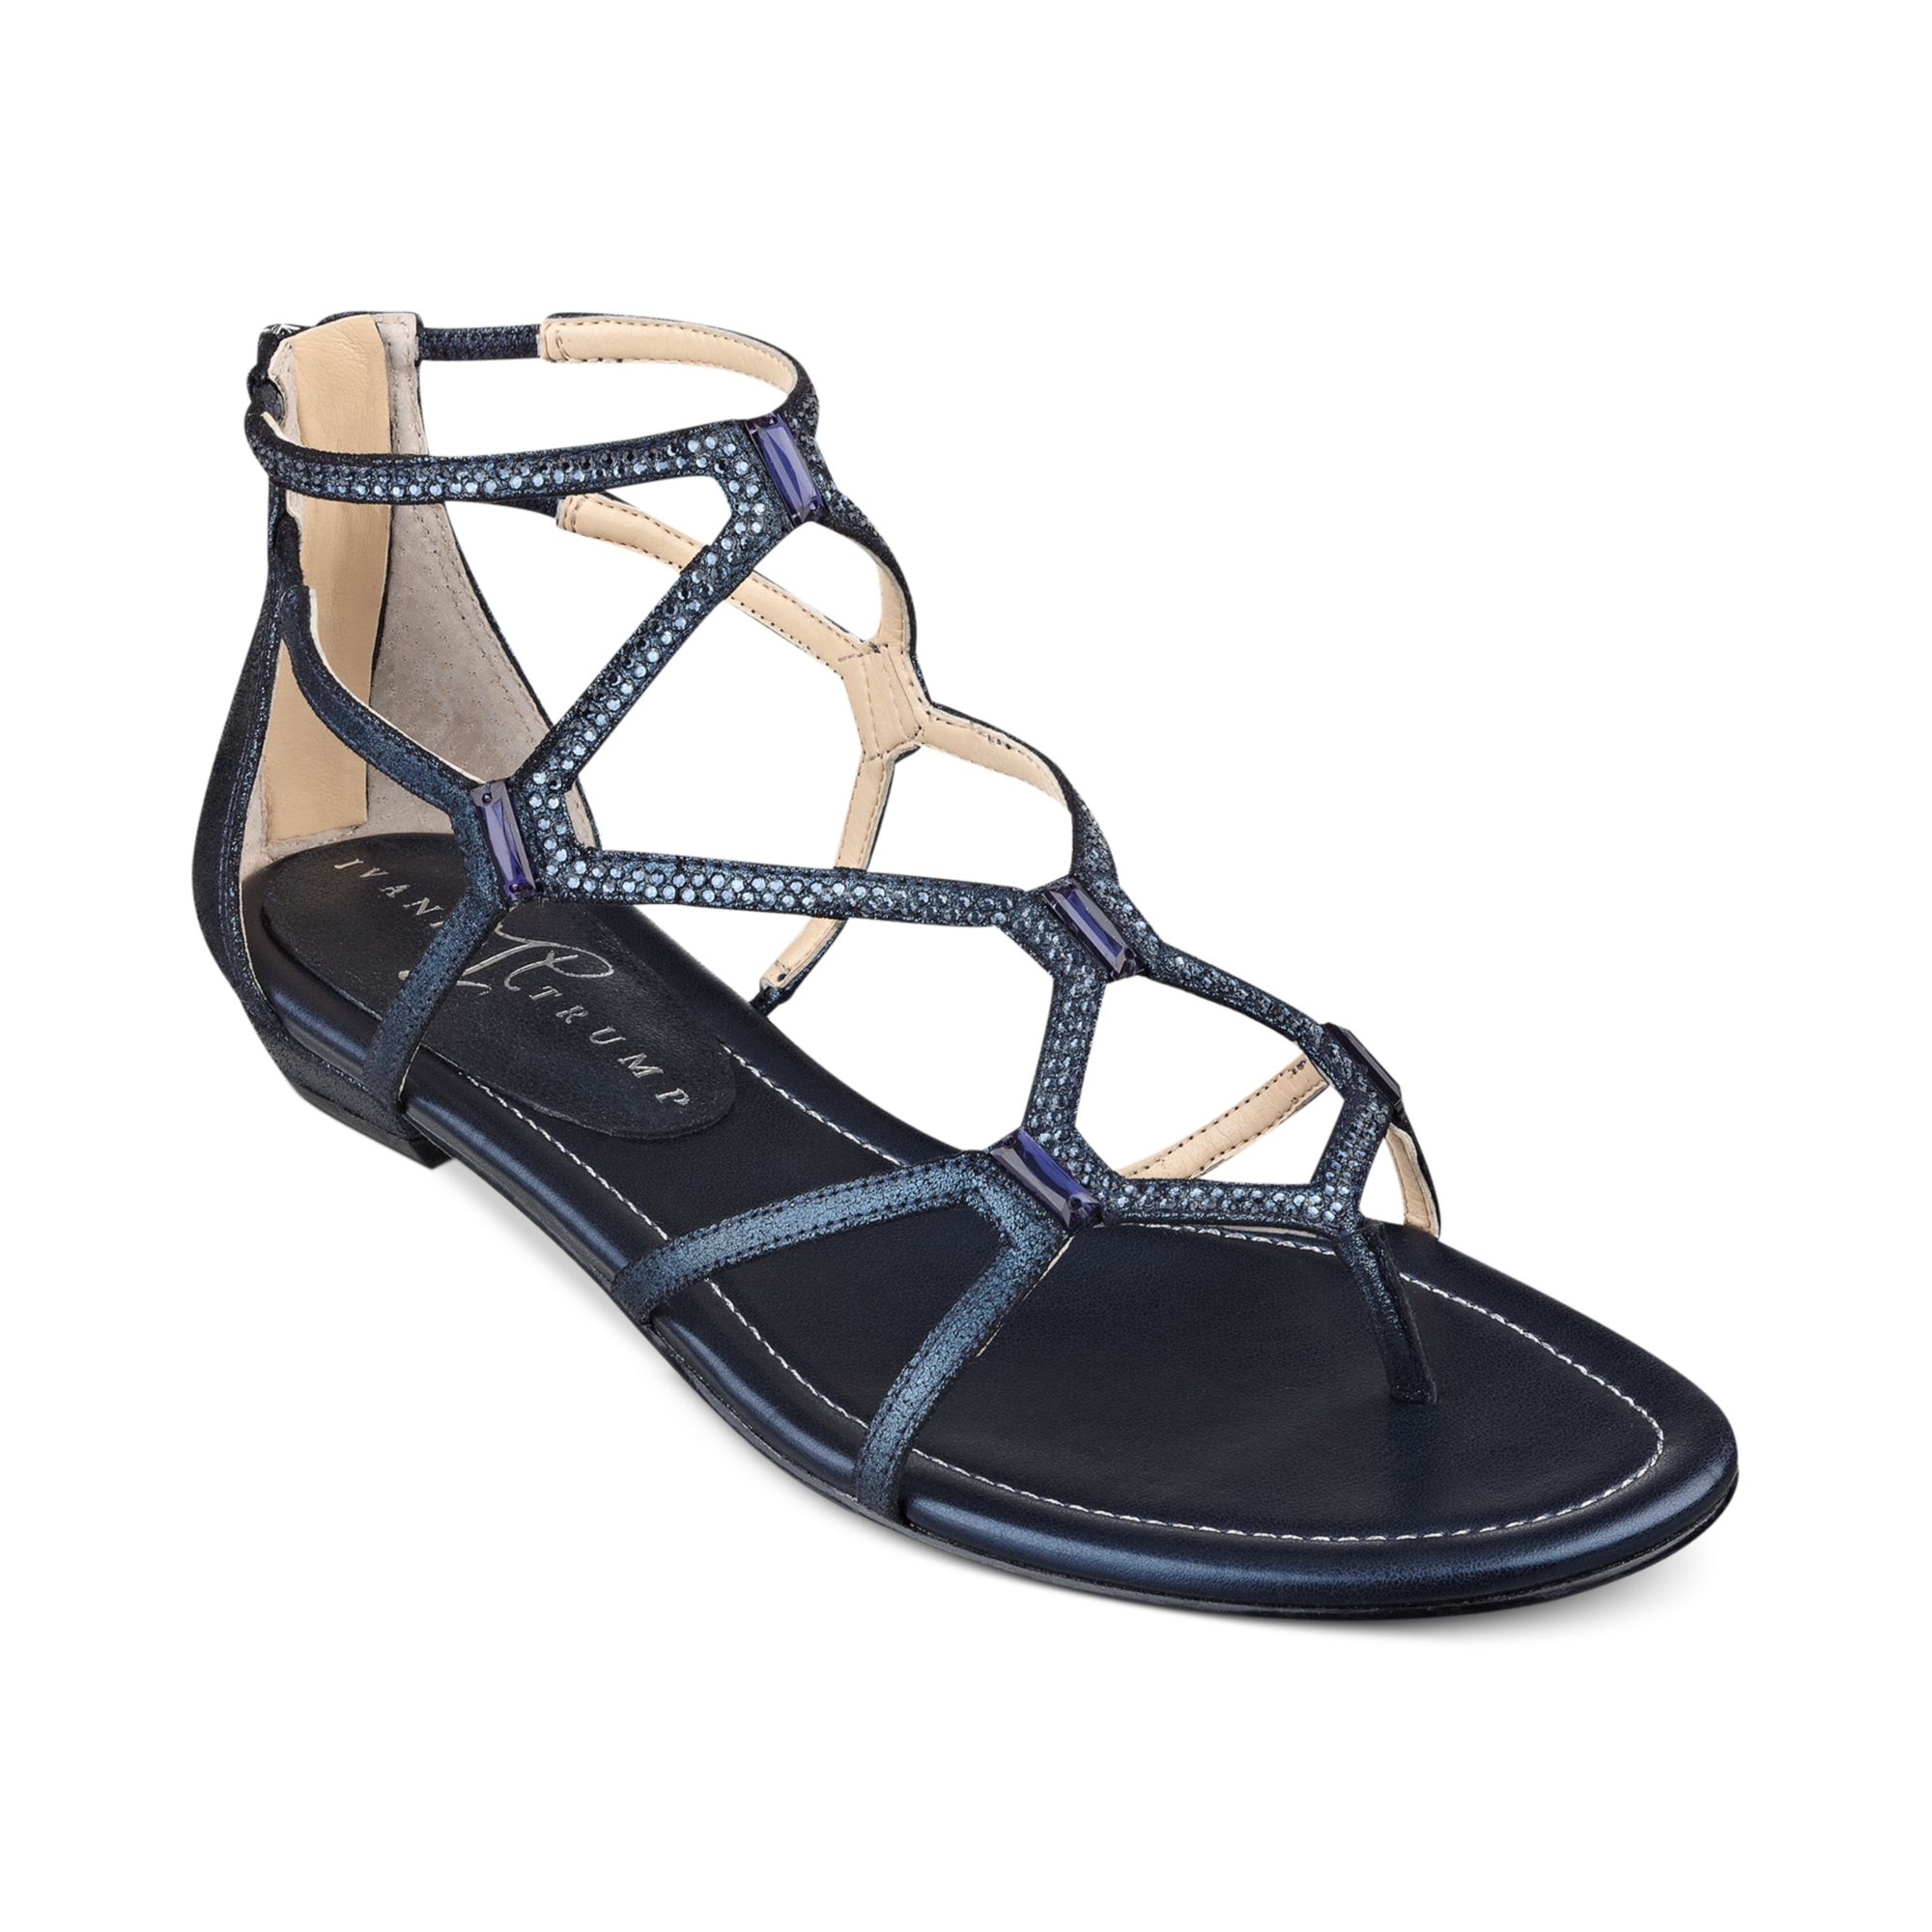 Ivanka Trump Kalia Flat Sandals In Blue Lyst - 2000x2000 - jpeg